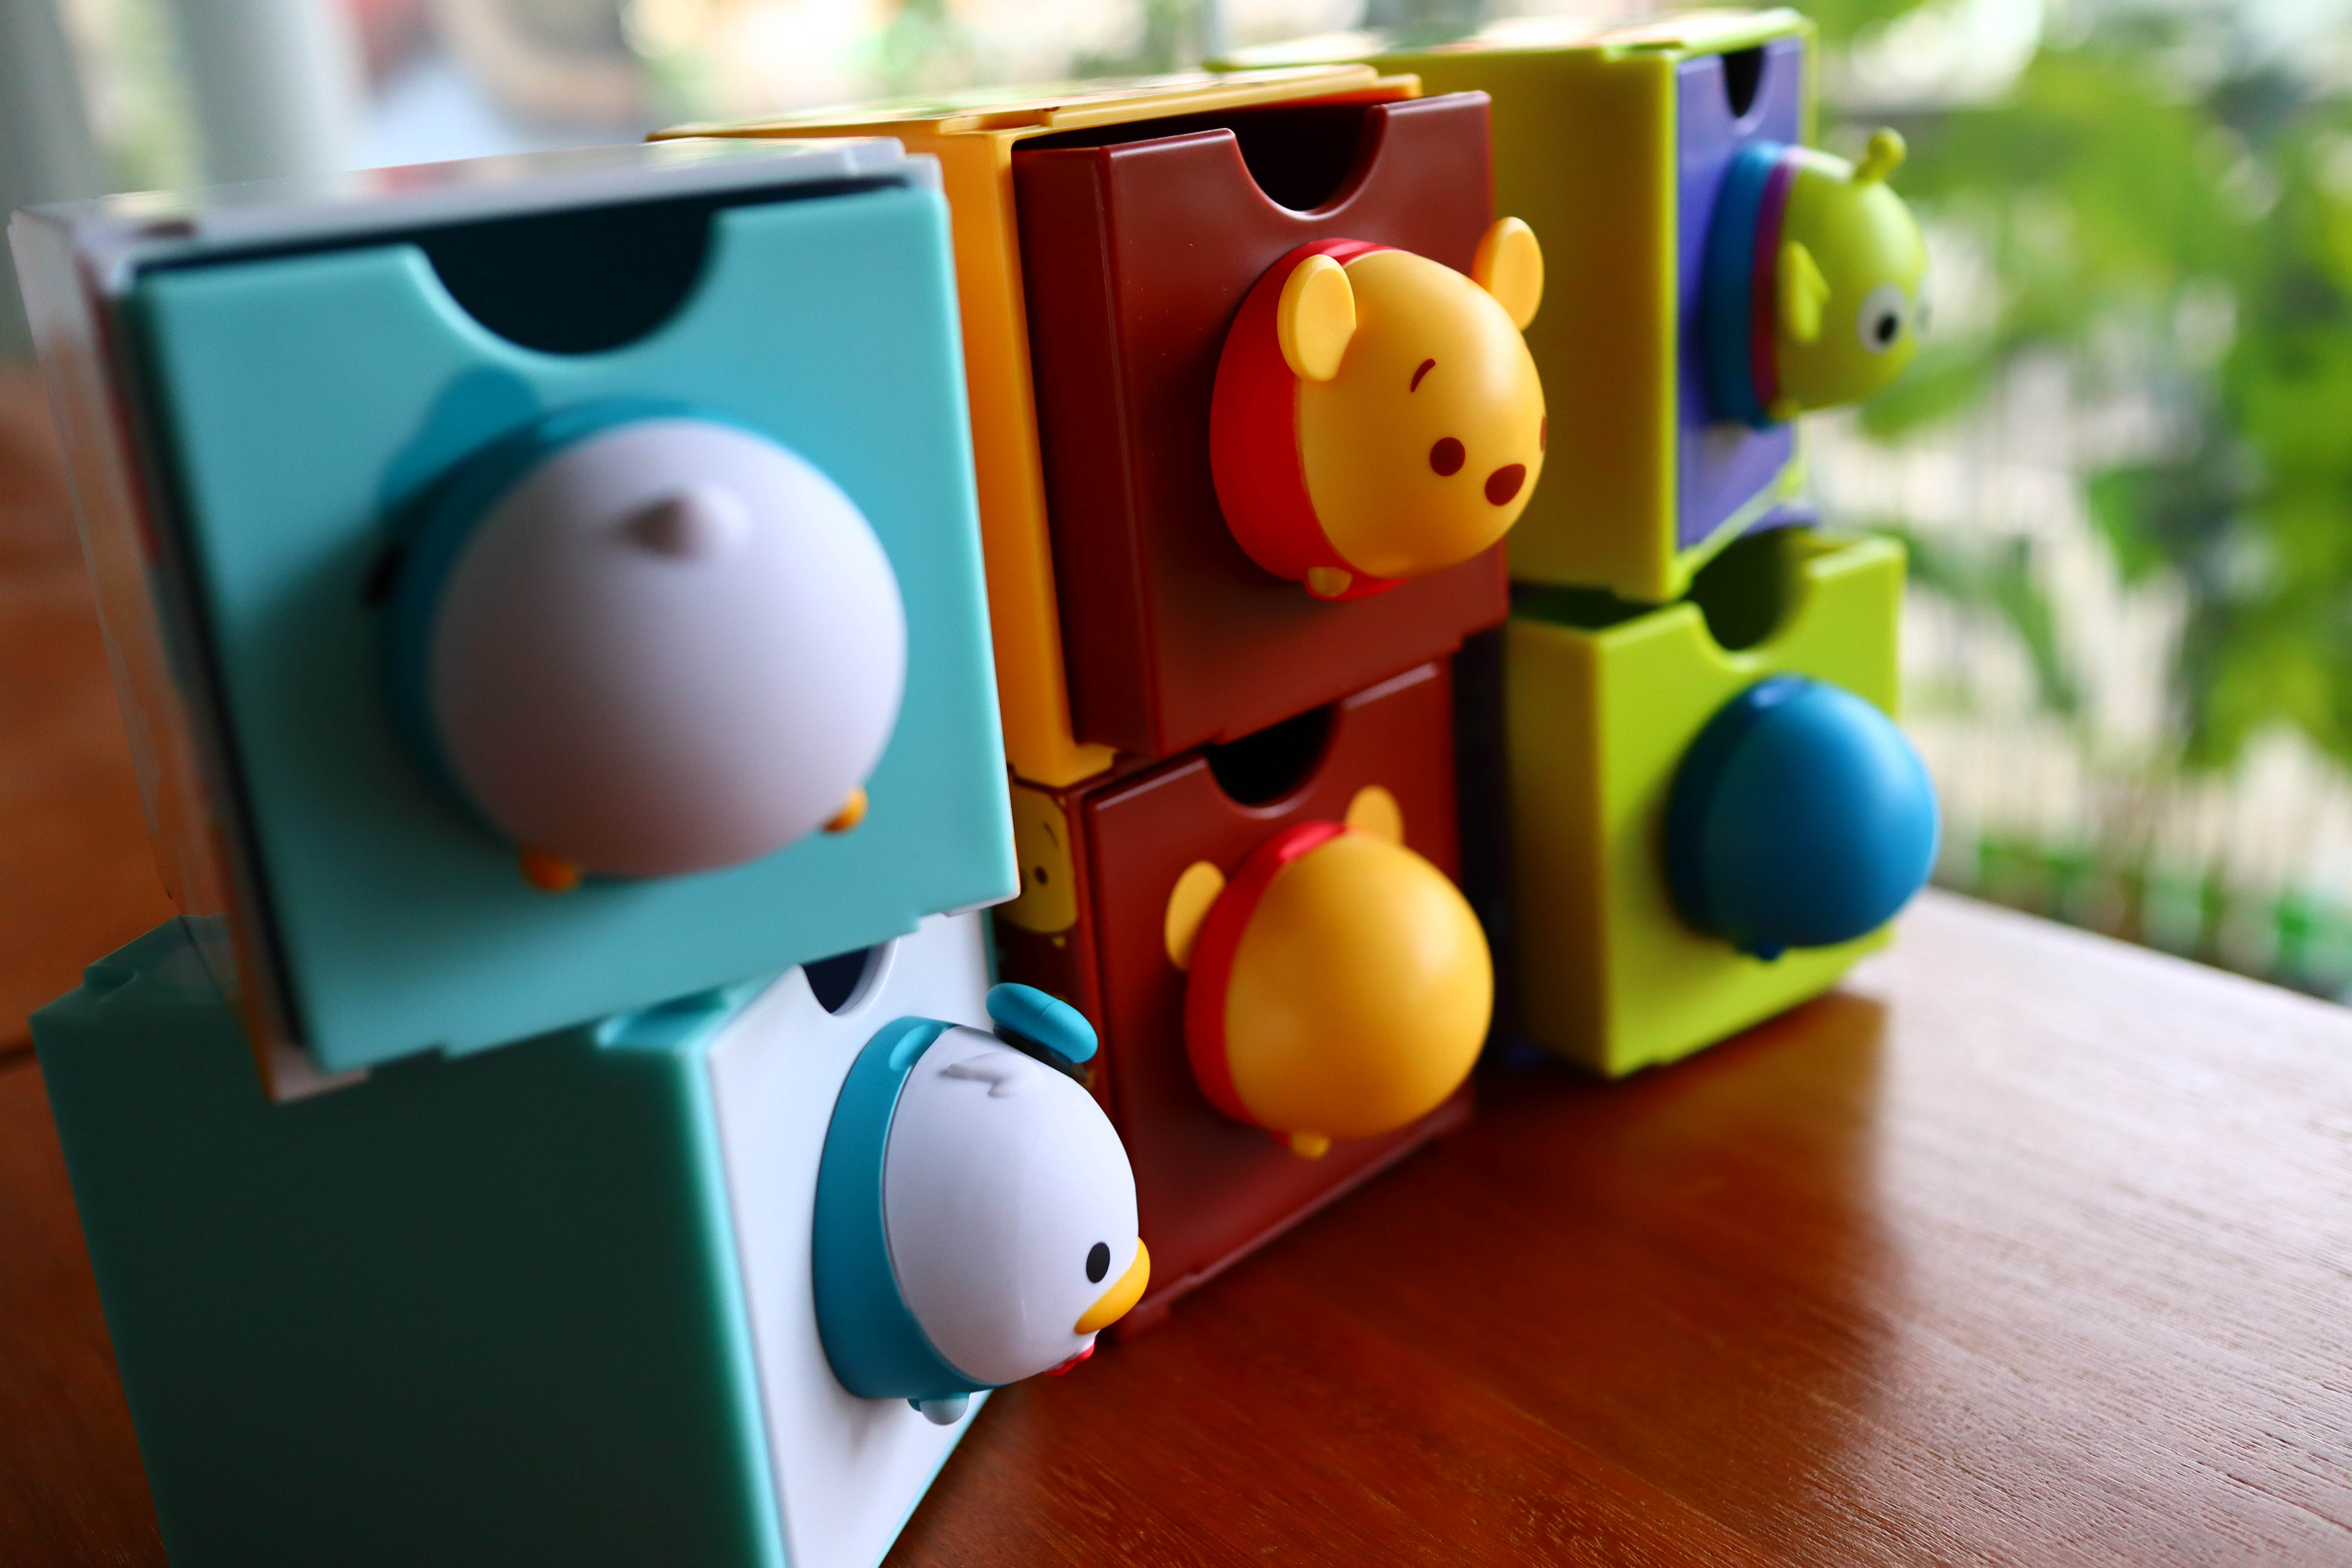 Collect all 12 stackable Disney Tsum Tsum drawers from 7-Eleven - Alvinology